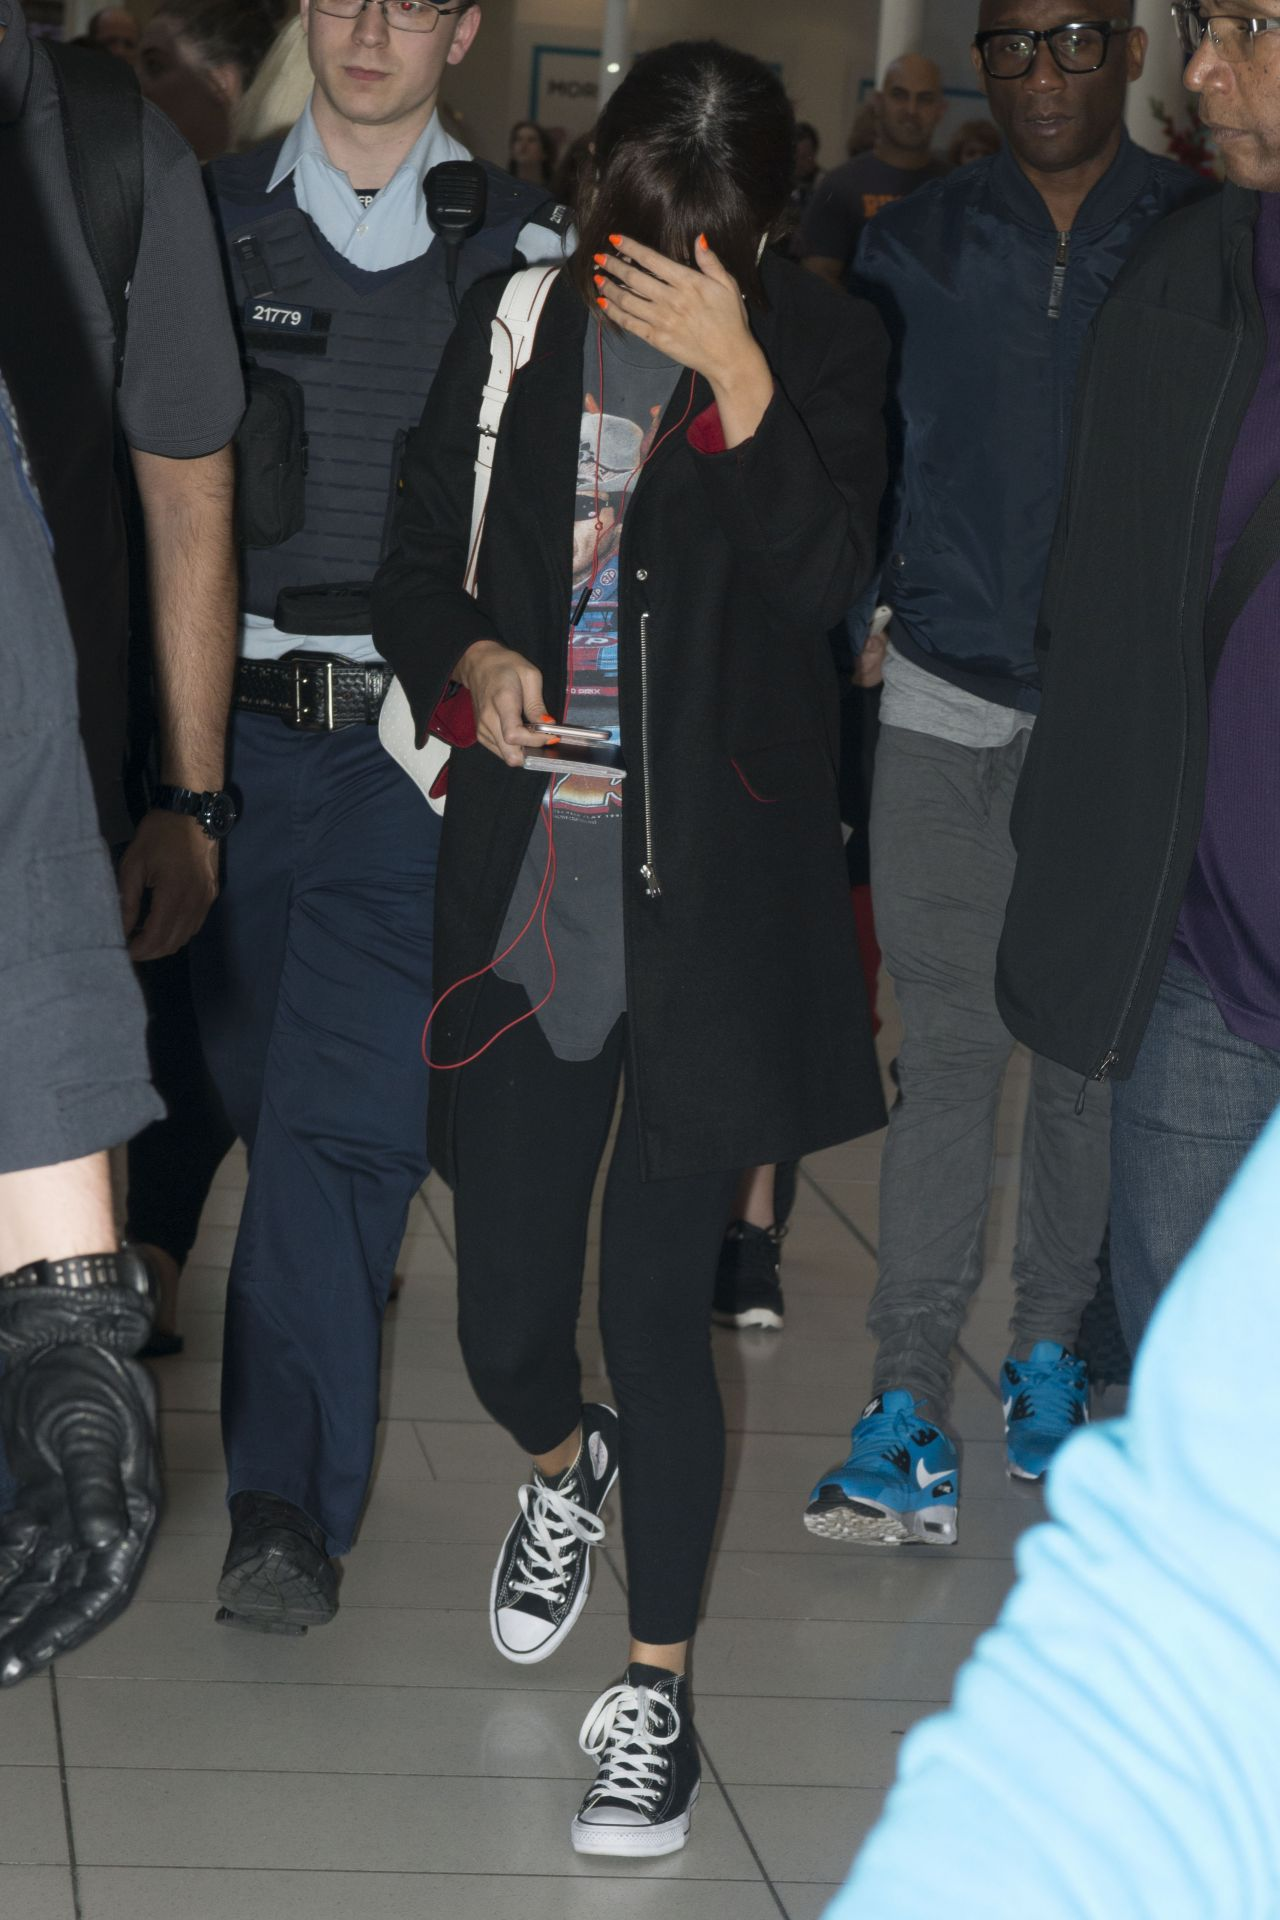 Selena Gomez Escorted By Police As She Leaves Sydney Airport 8102016